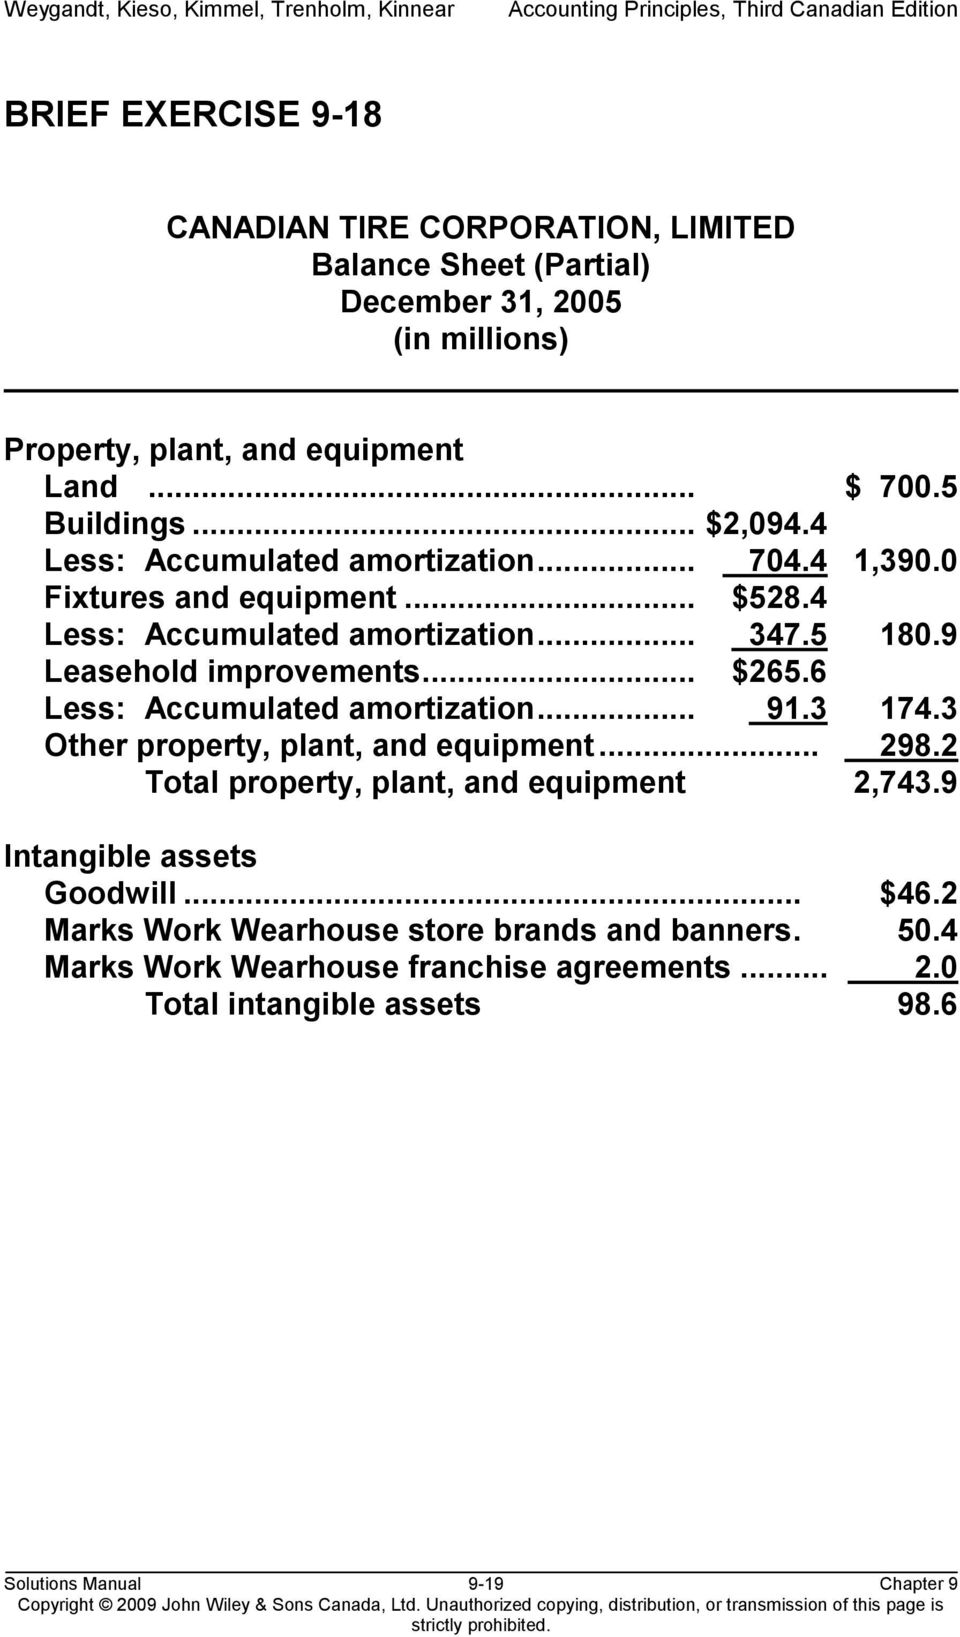 6 Less: Accumulated amortization... 91.3 174.3 Other property, plant, and equipment... 298.2 Total property, plant, and equipment 2,743.9 Intangible assets Goodwill.